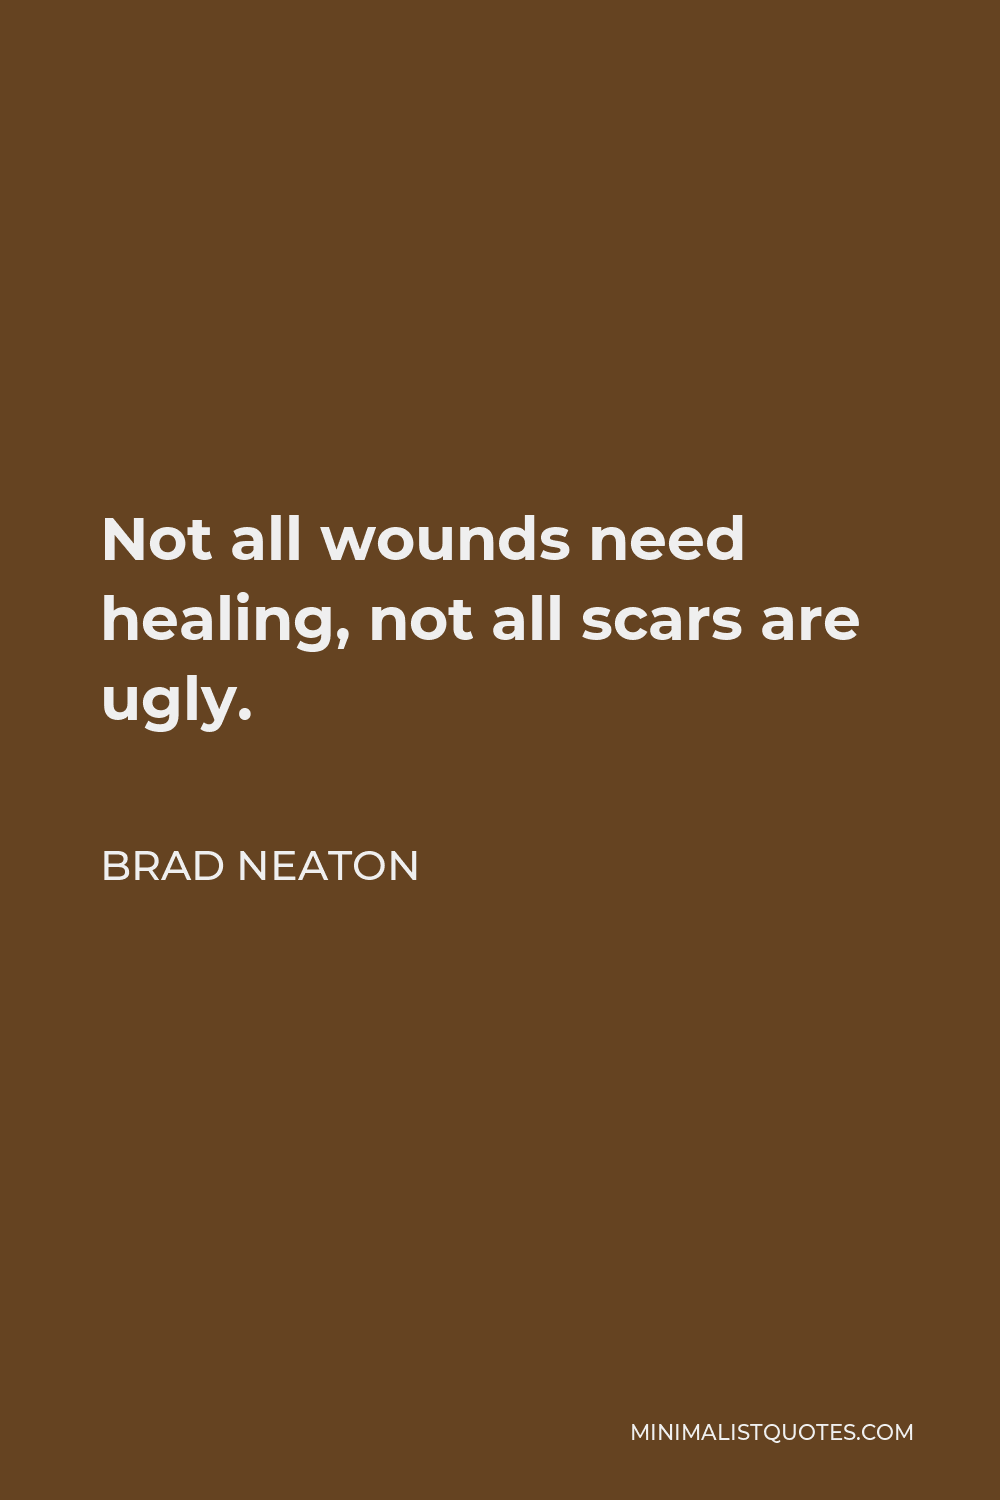 Brad Neaton Quote - Not all wounds need healing, not all scars are ugly.